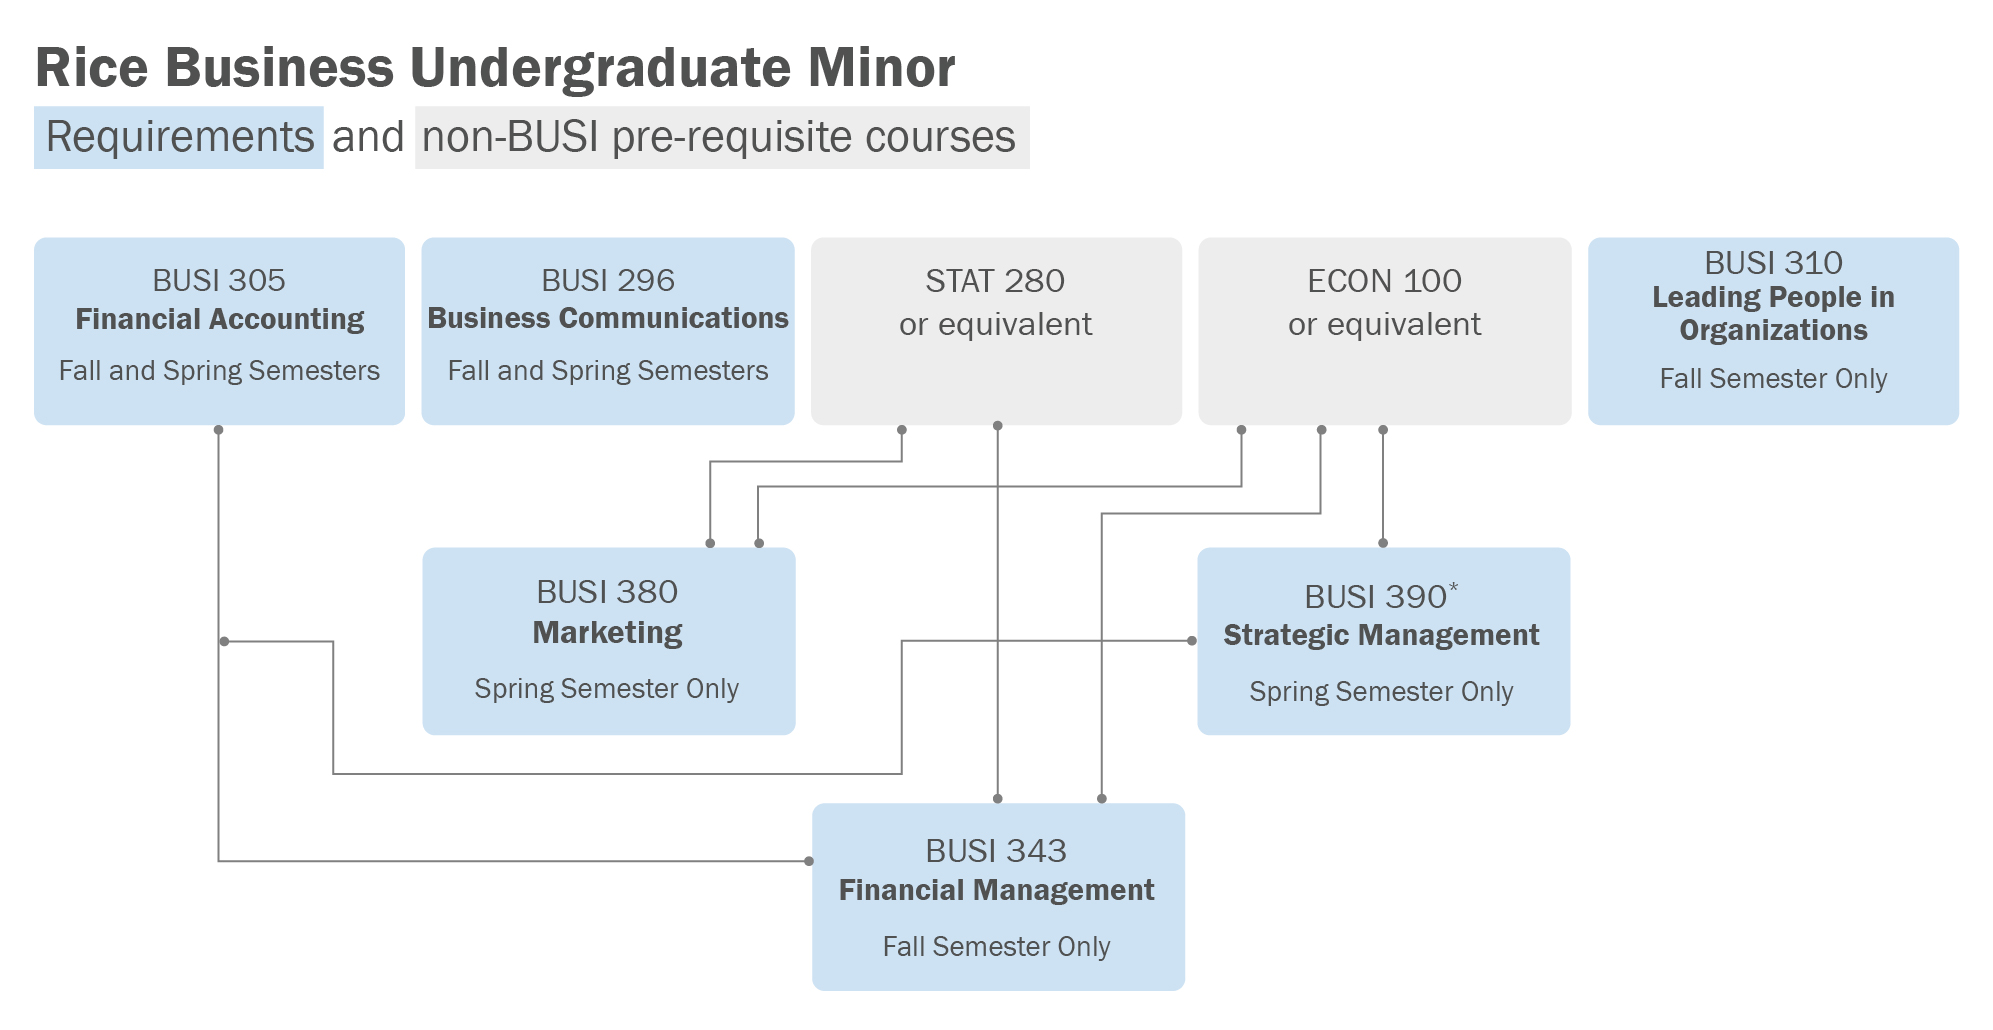 Rice Business Undergraduate Business Minor Requirements